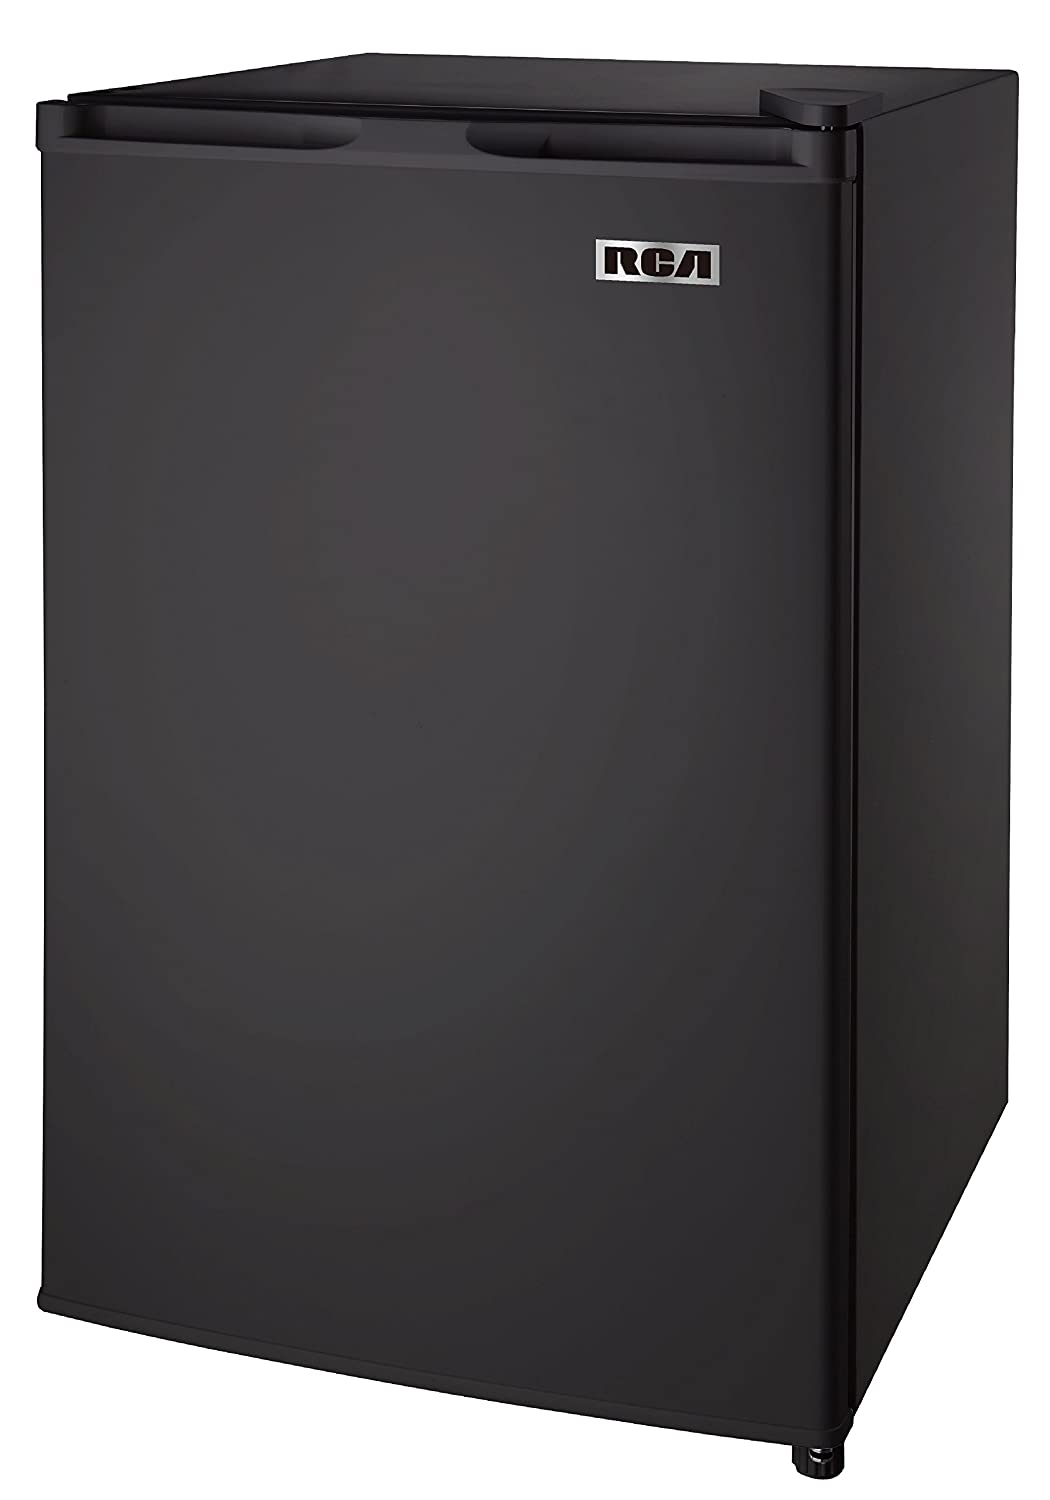 RCA RFR440-Black Fridge, 4.6 Cubic Feet, Black